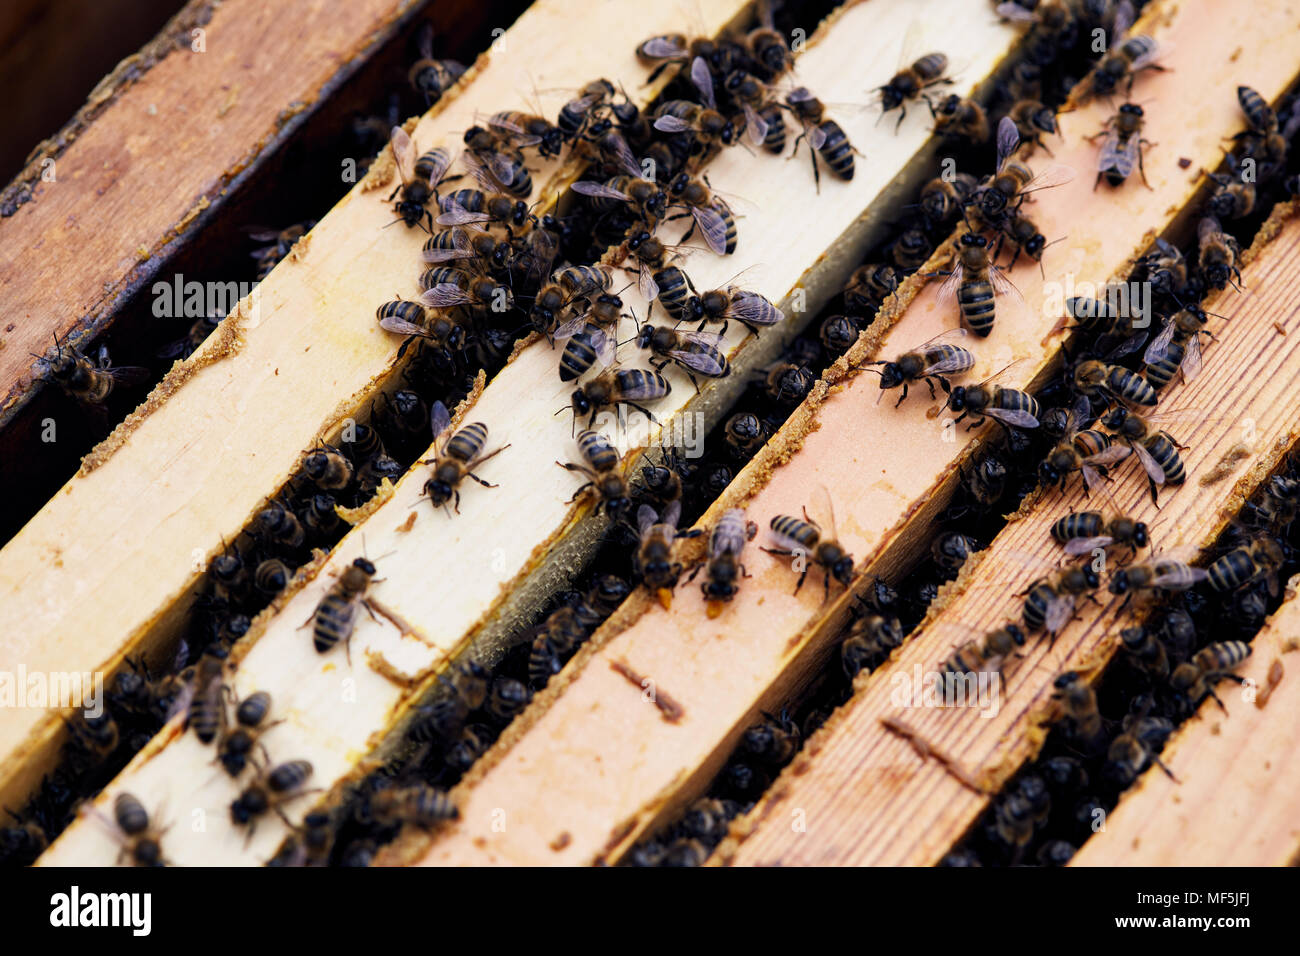 Apiary Hive Background - Stock Image